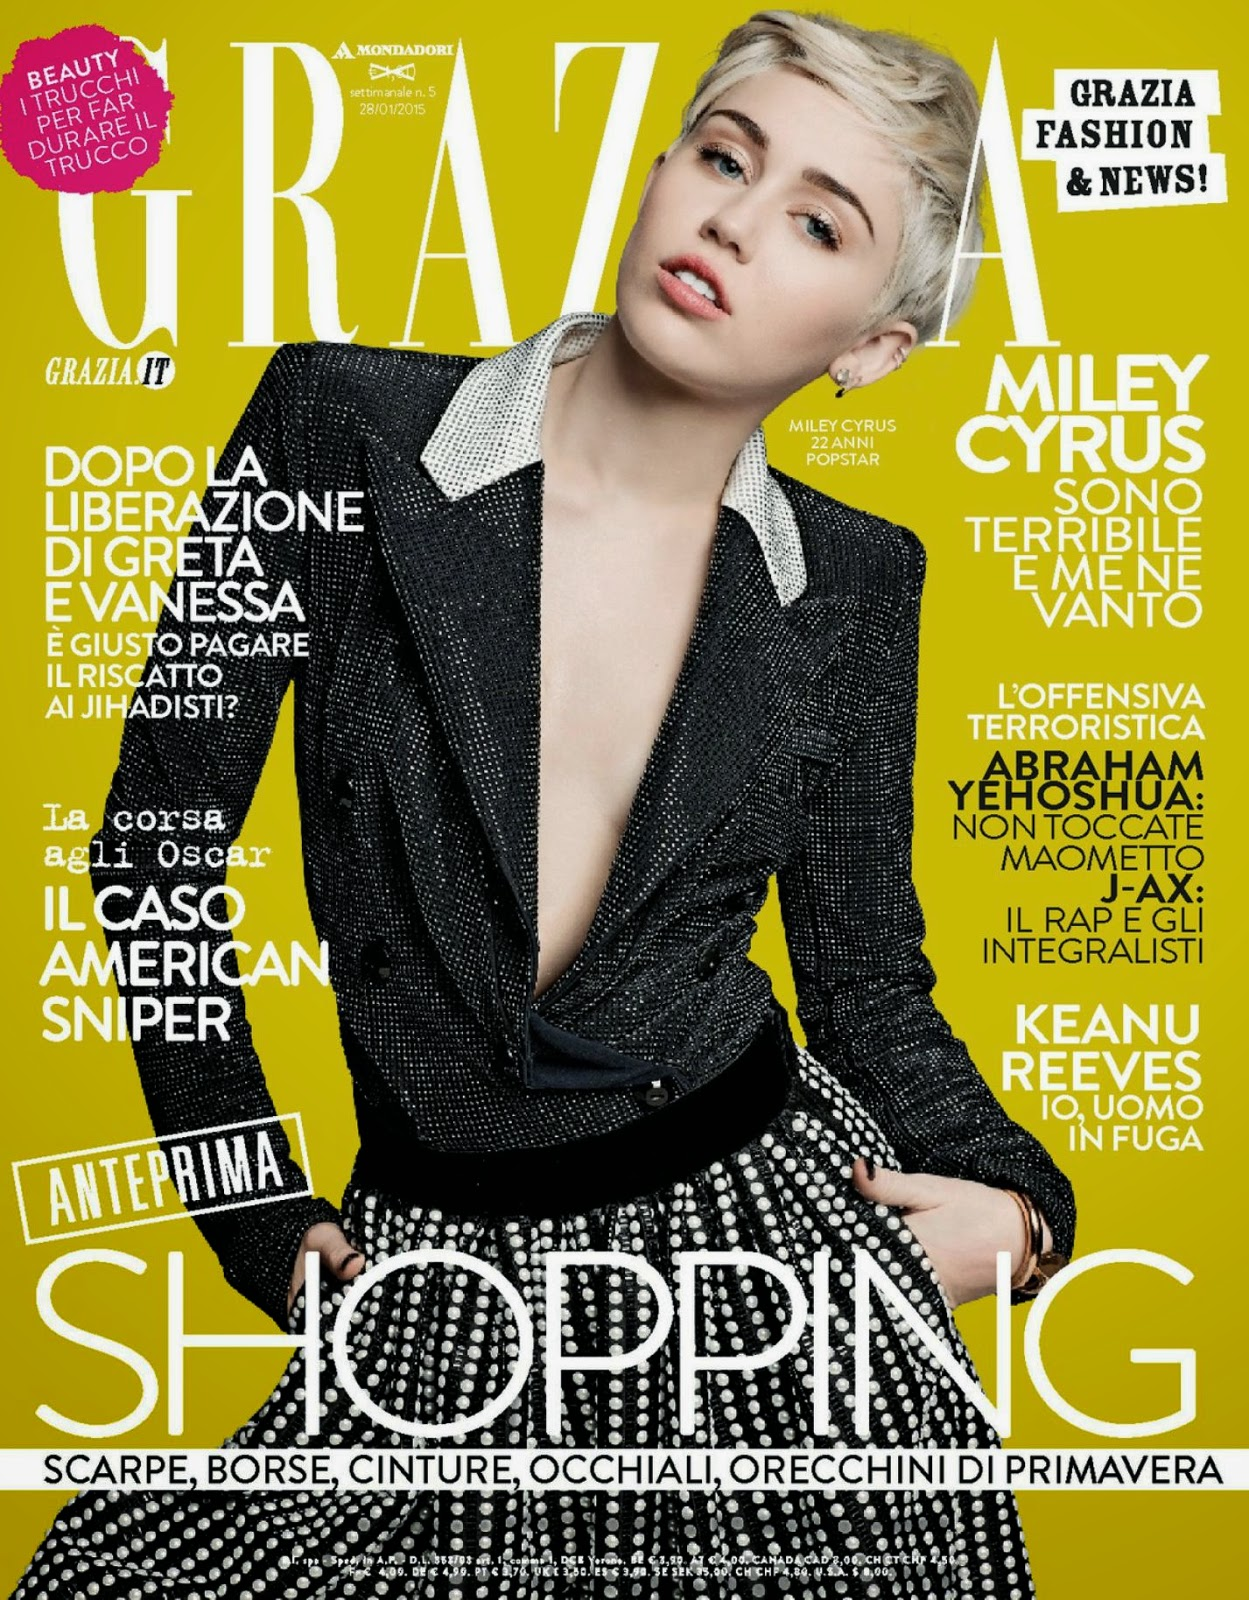 Singer, Actress: Miley Cyrus for Grazia, Italy